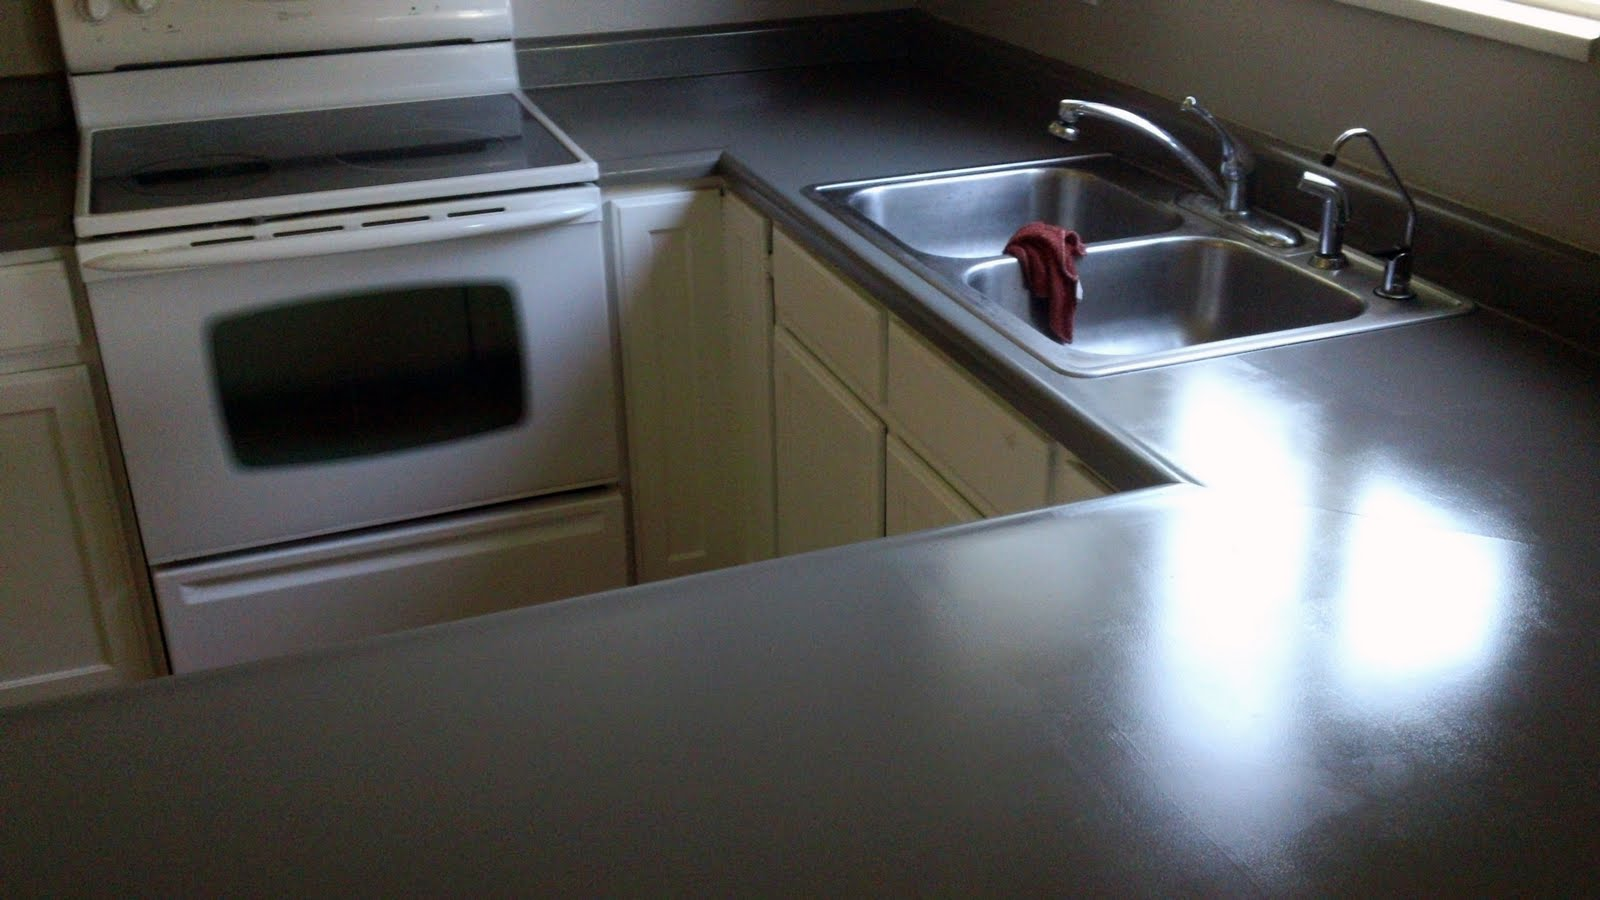 rust oleum countertop coating putty painted countertops chris 762